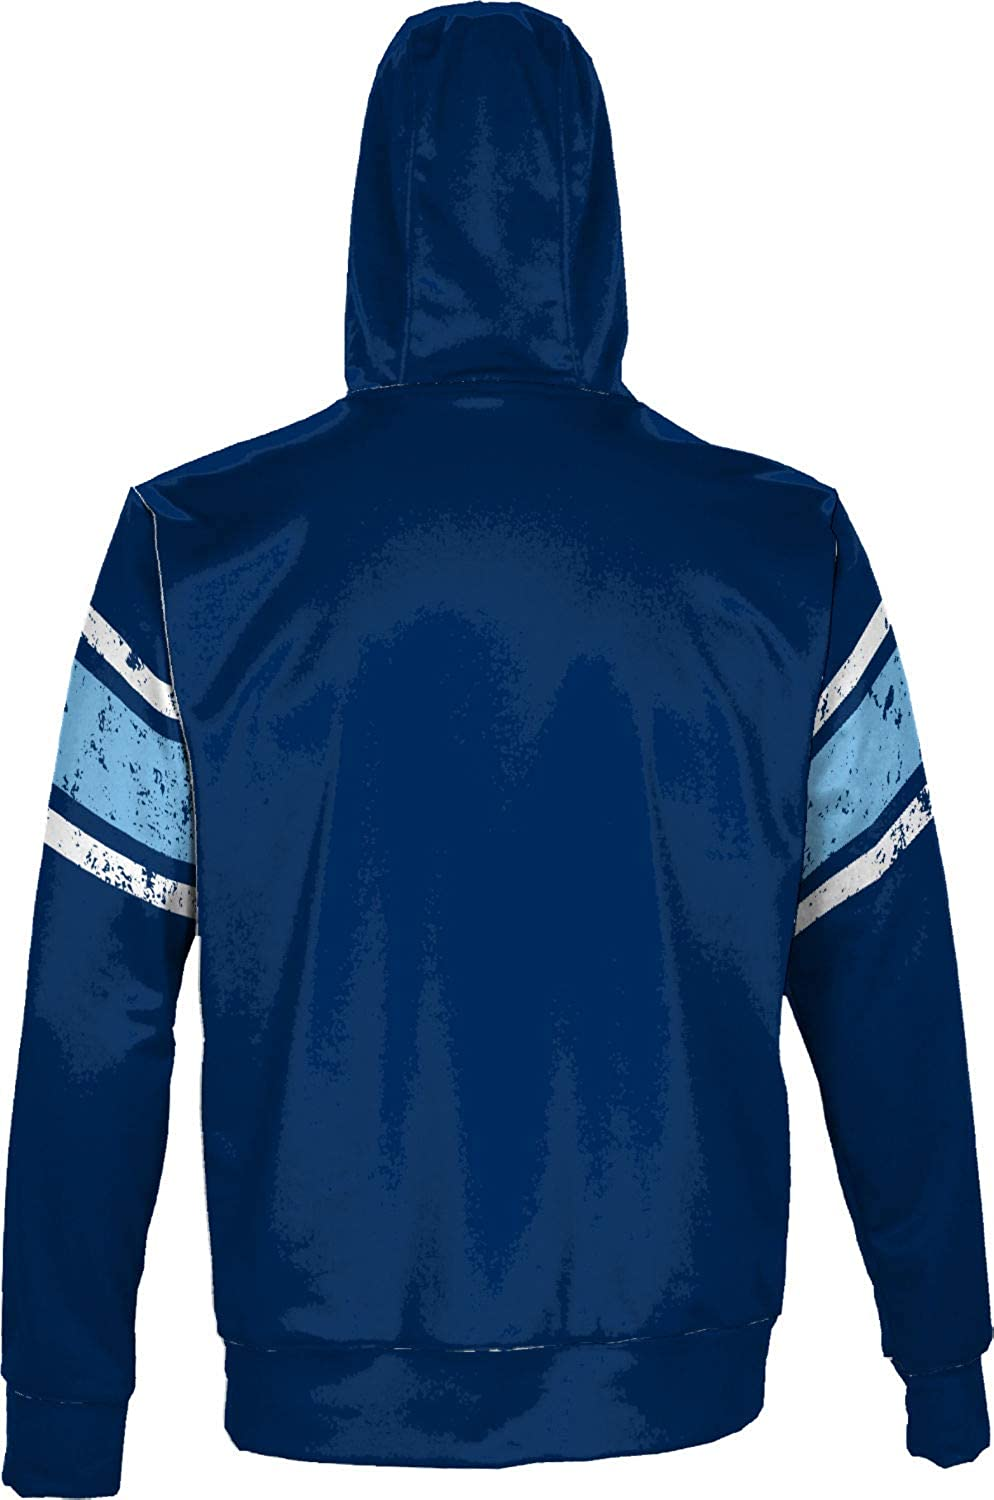 End Zone ProSphere University of Maine Boys Pullover Hoodie